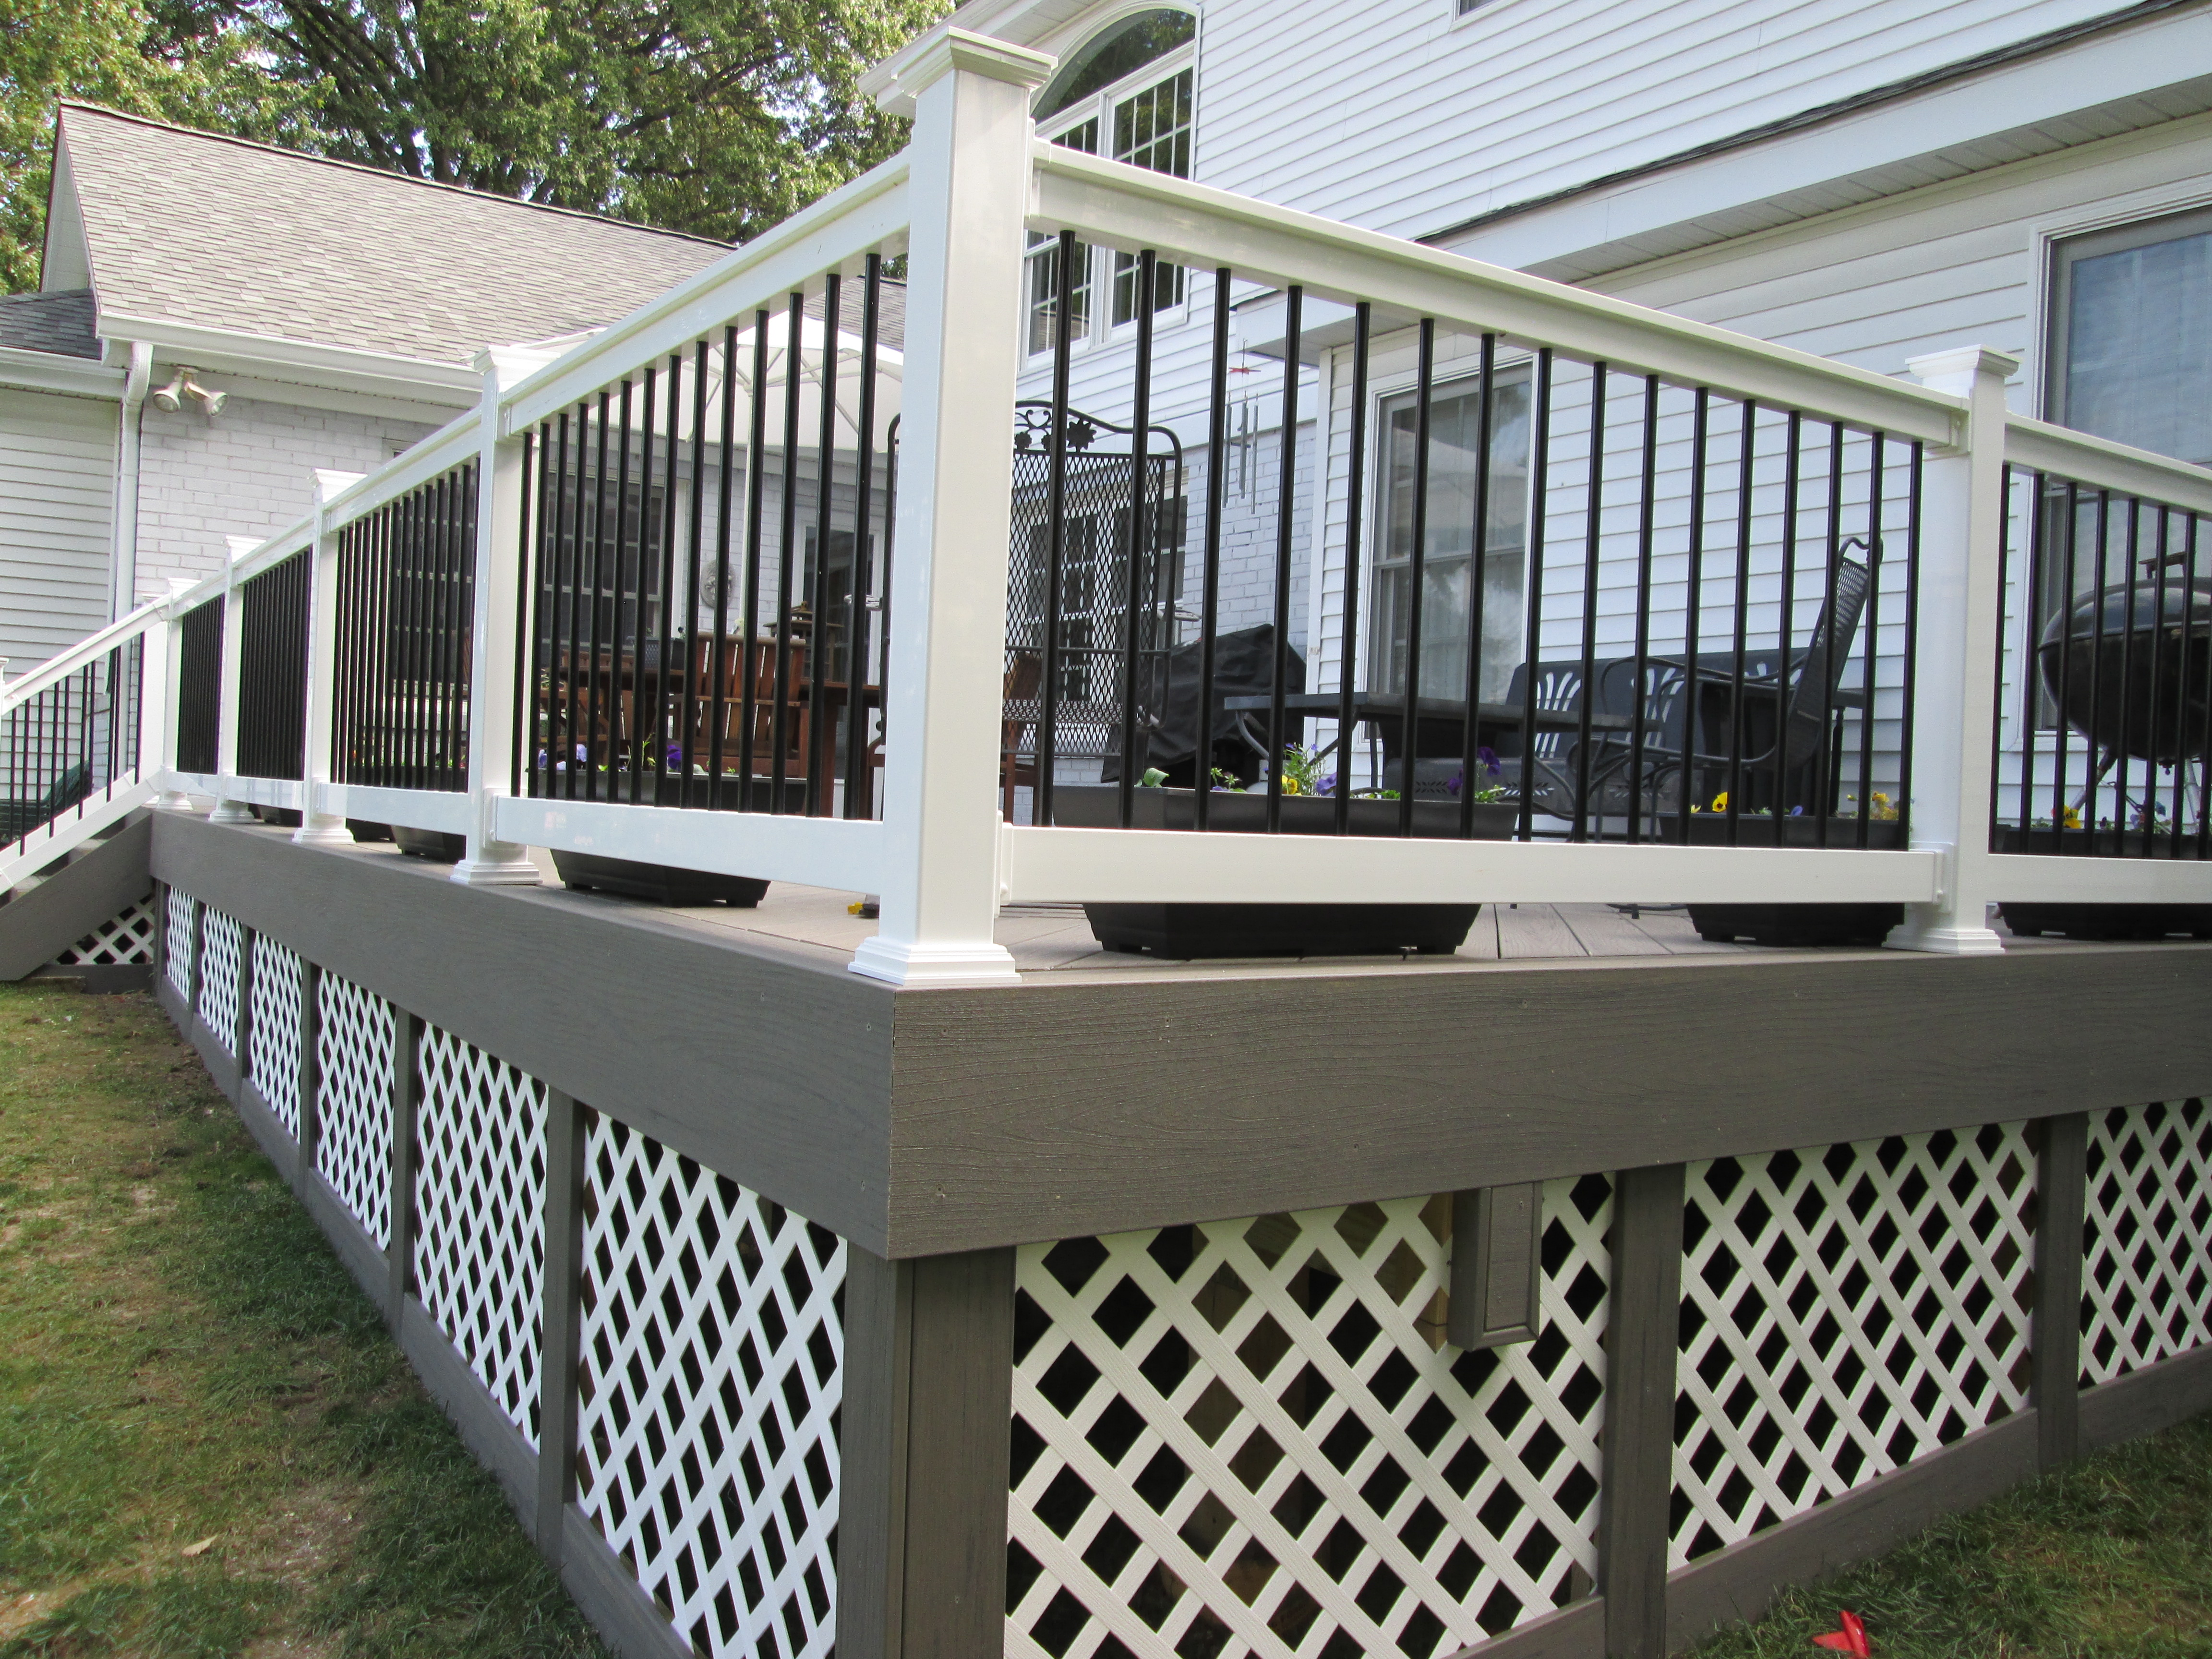 Types Of Balusters For Deck Rails St Louis Decks Screened Porches Pergolas By Archadeck